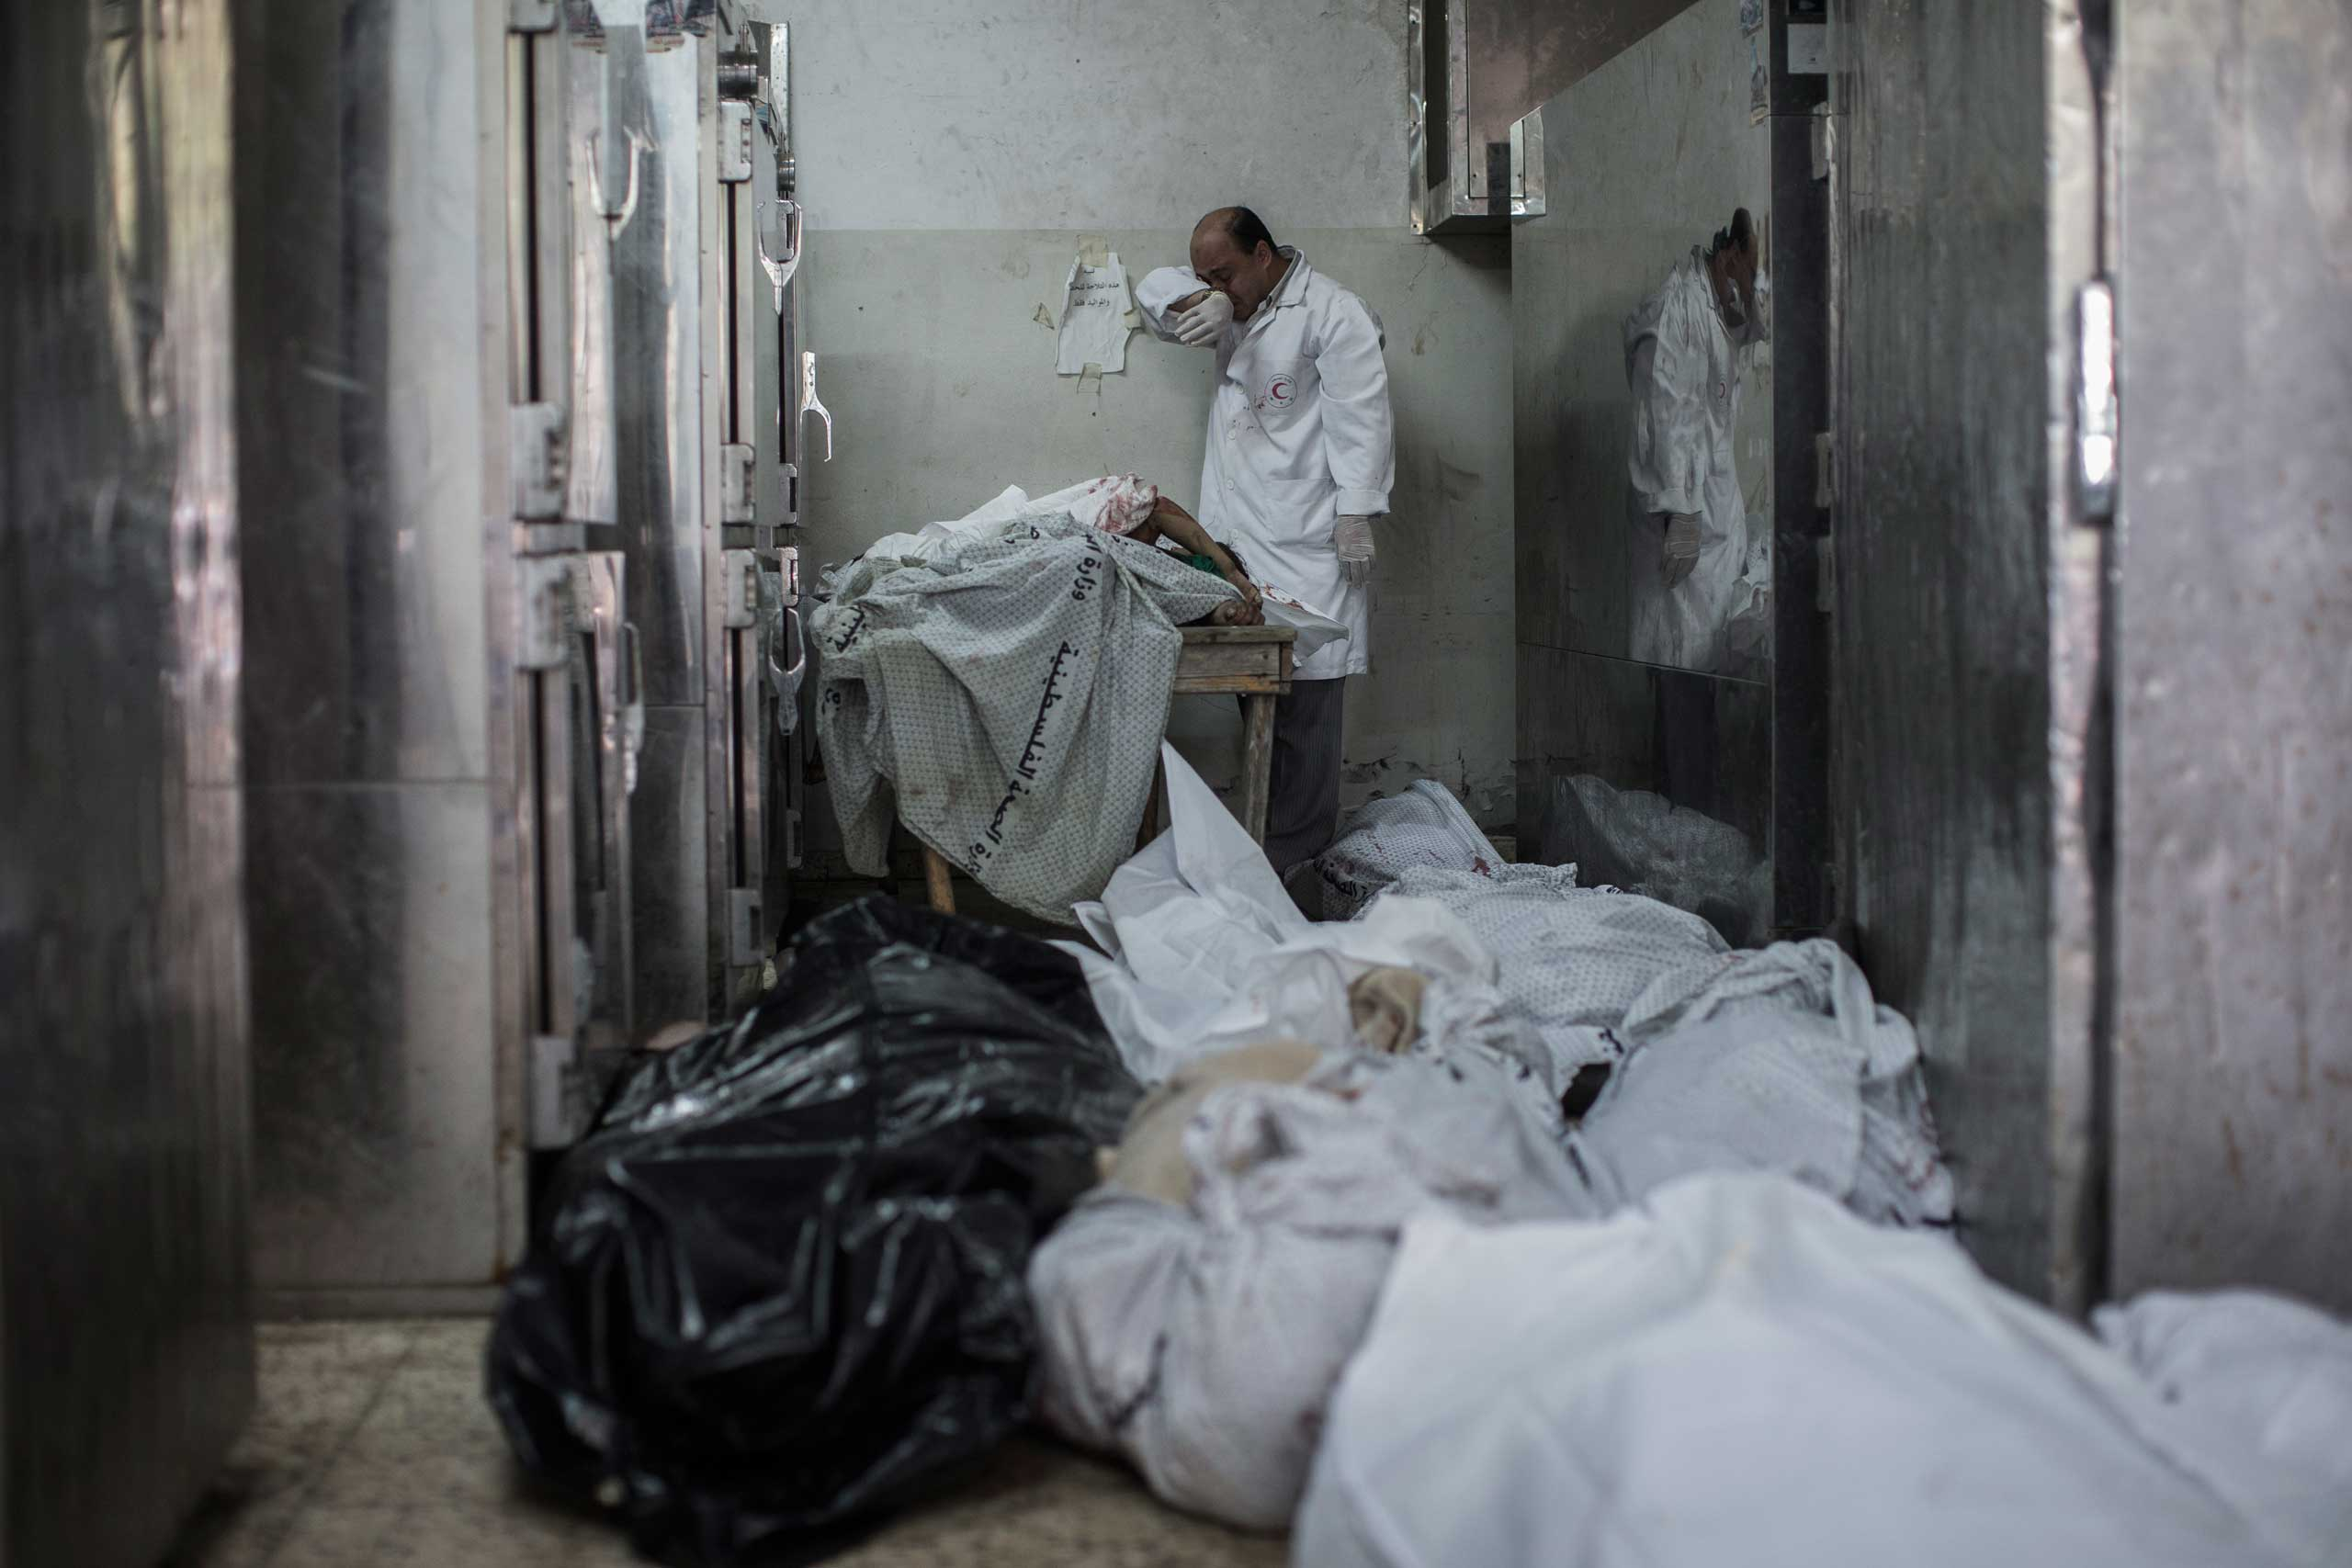 A doctor cries while standing next to a table holding the bodies of four dead children in the overflowing morgue of Shifa Hospital in Gaza City, July 20, 2014.